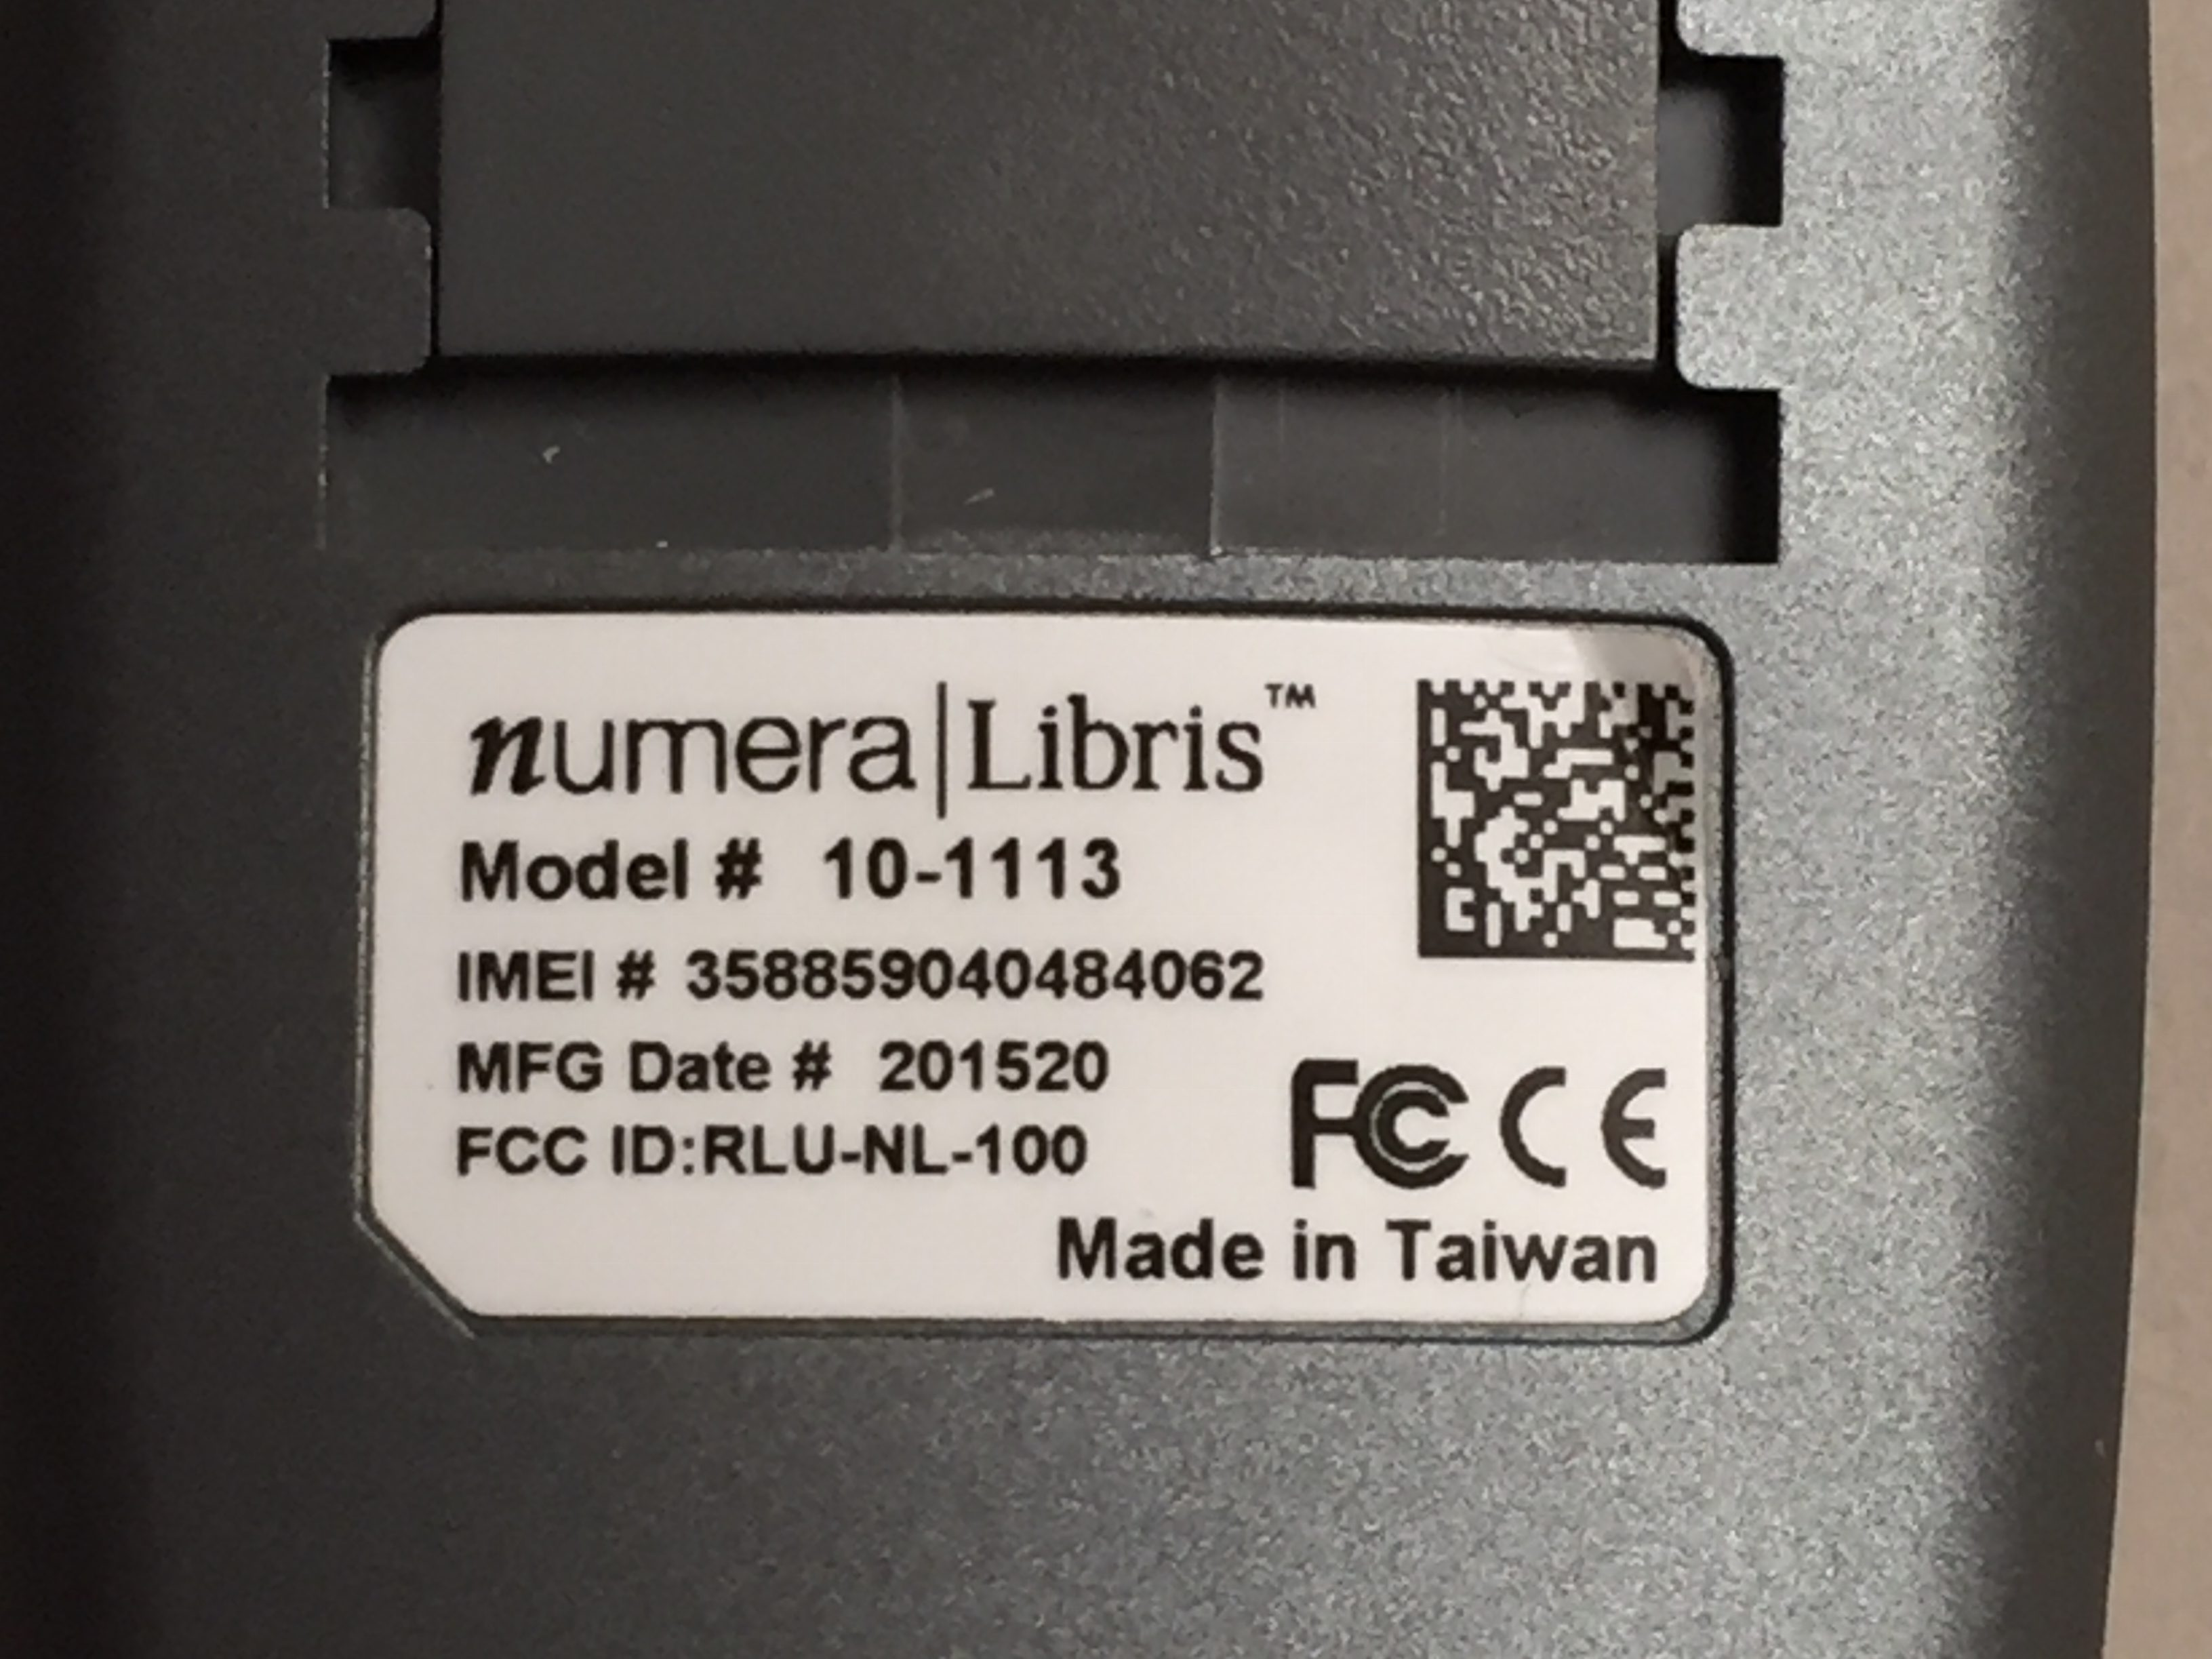 This label displays the manufacture and model, and other important information - Add a 2D bar-code with more details